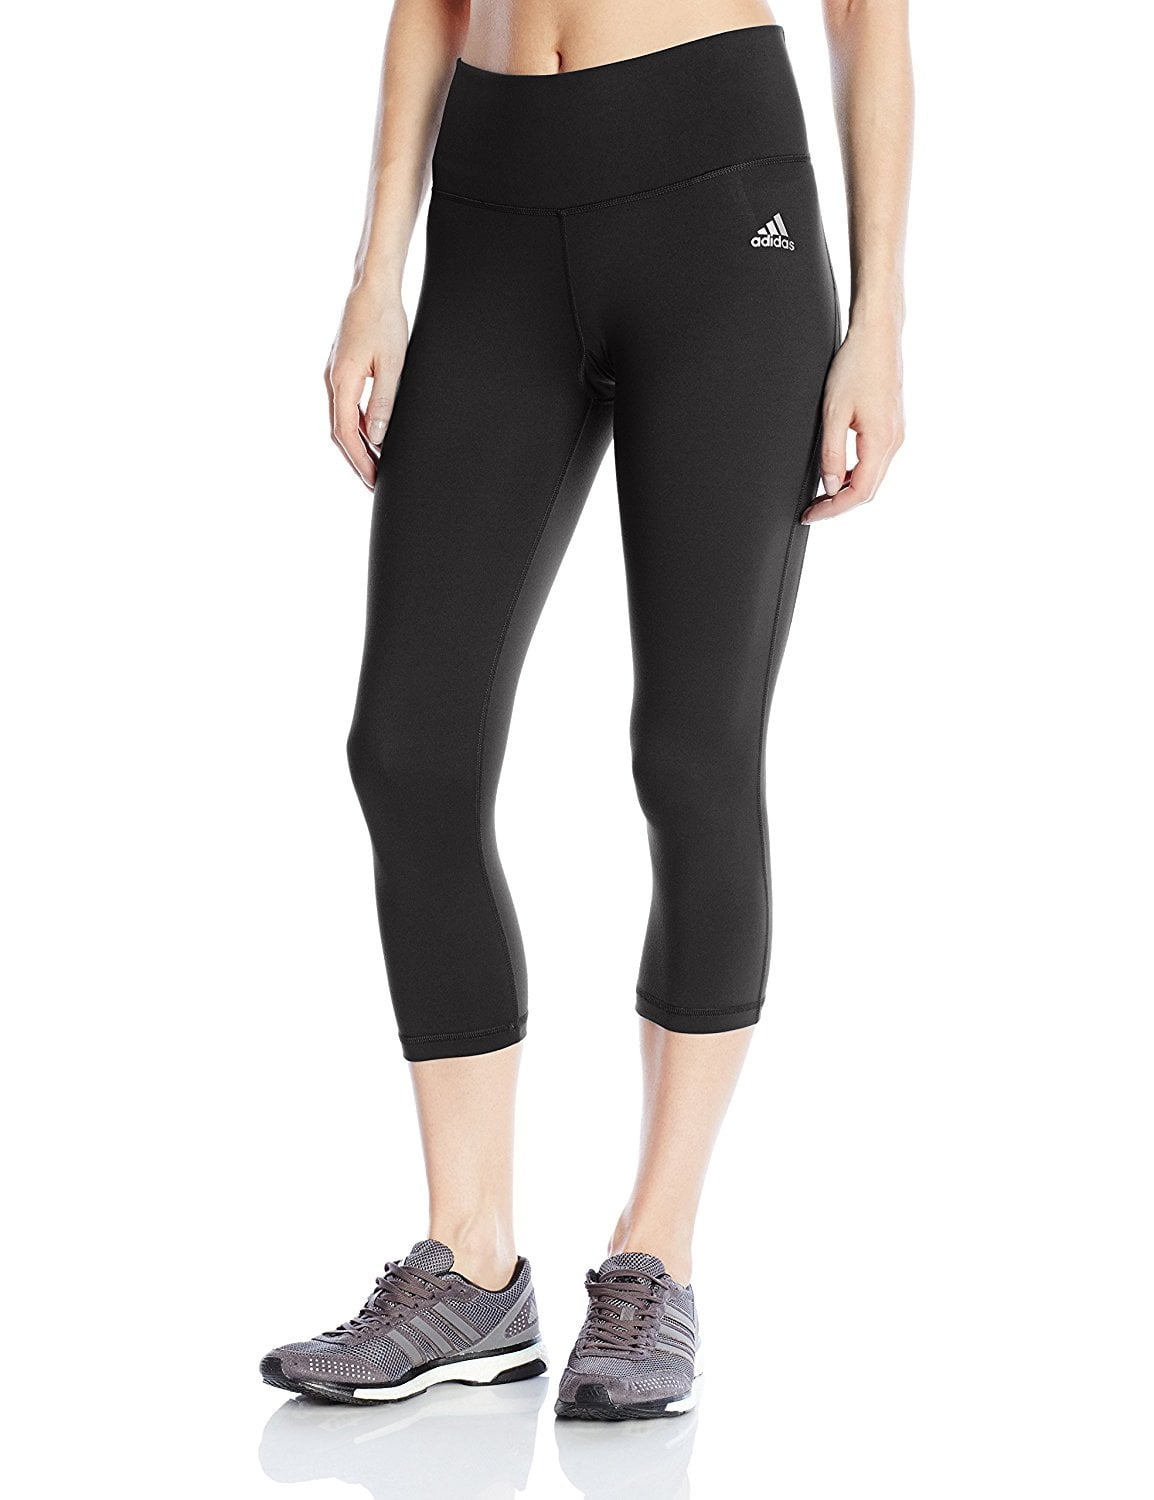 Sfondo verde progenie schema  Adidas Women's Performer 3/4 Tights | If $100 Yoga Pants Make You Ragey,  Then Shop These Affordable Workout Clothes | POPSUGAR Fitness Photo 11